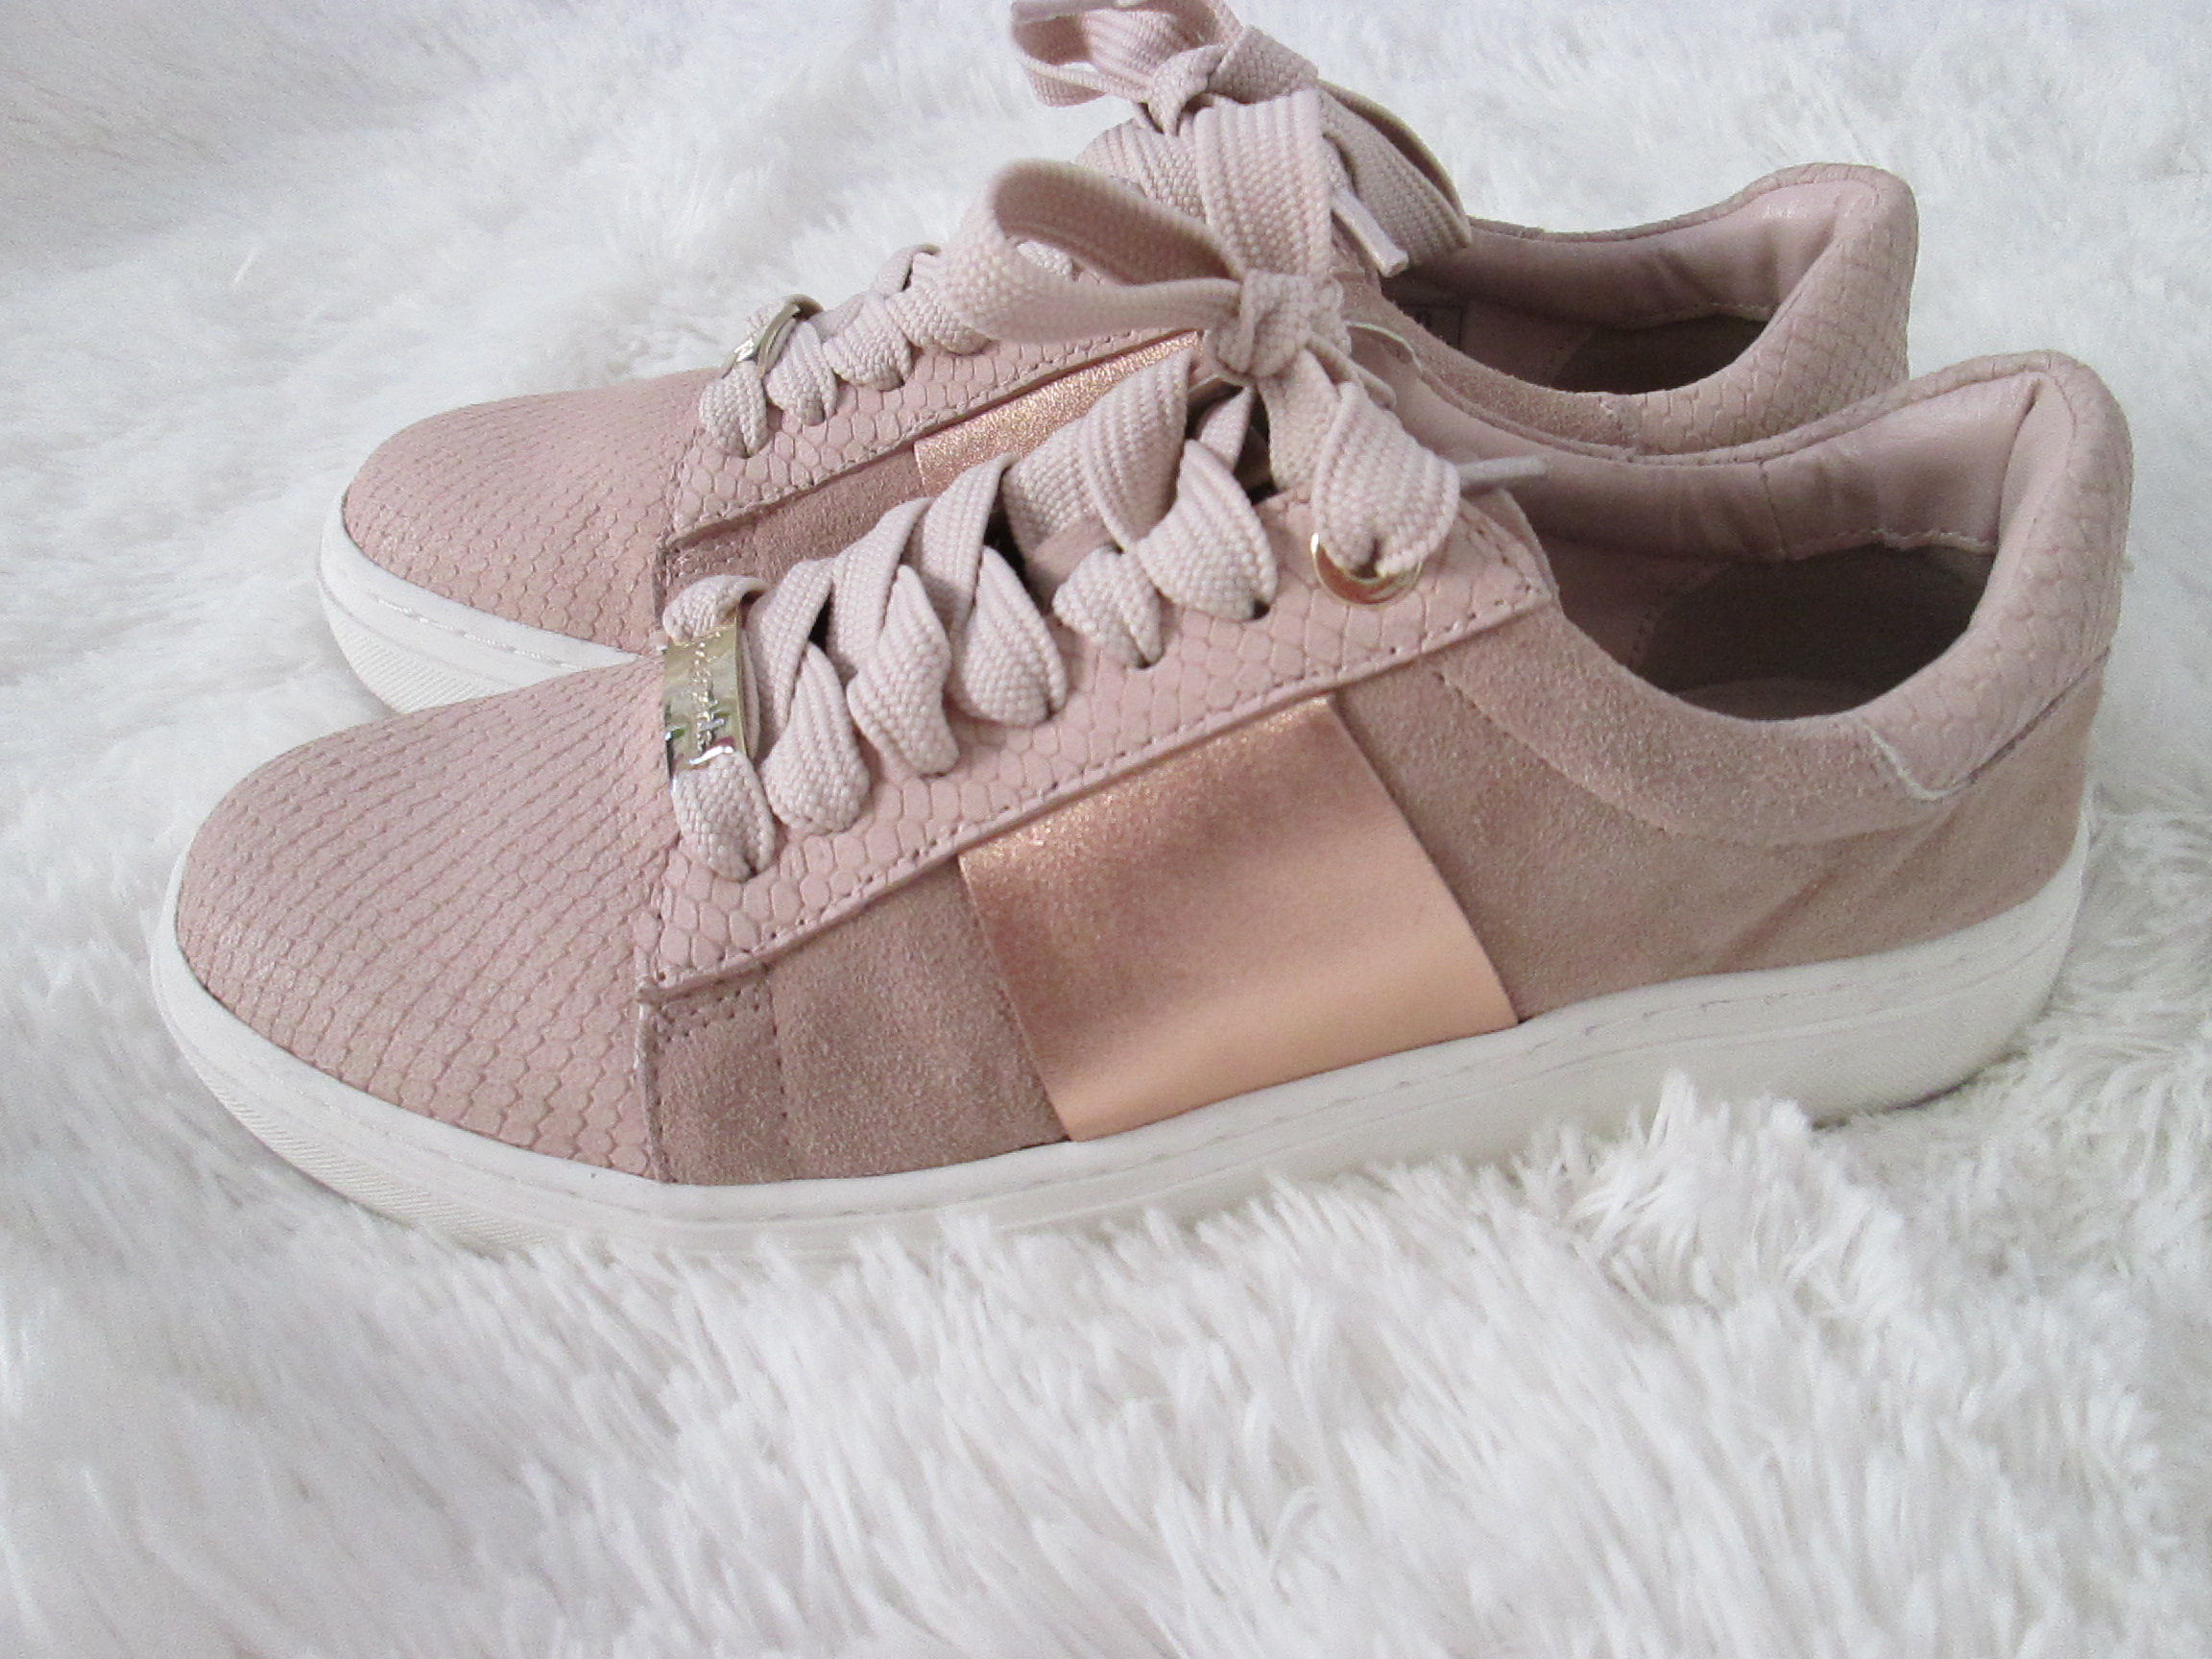 7d43076beeb2 The best blush sneakers that are on sale! - More Than A Fashion Blog